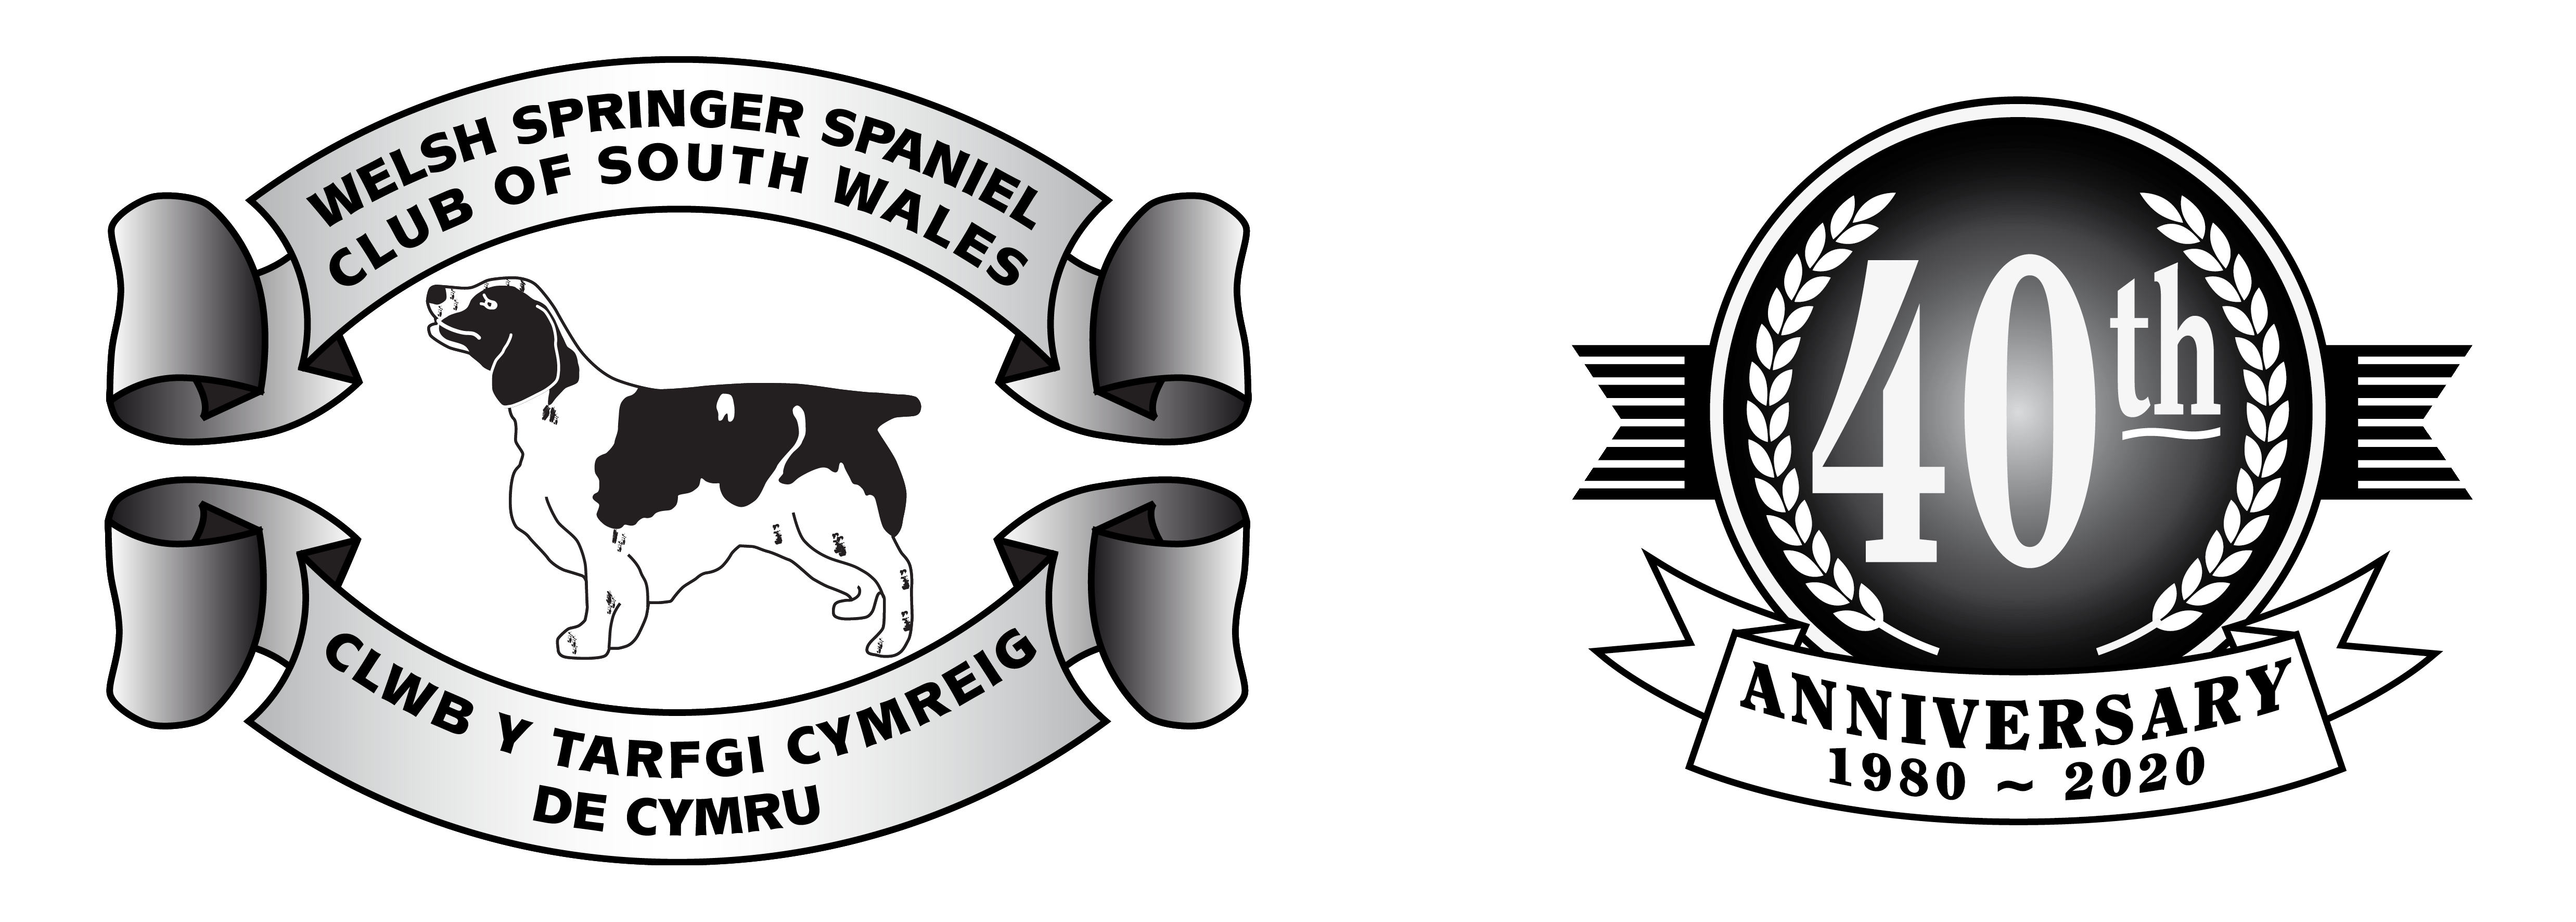 wsscsw logo plus 40th b